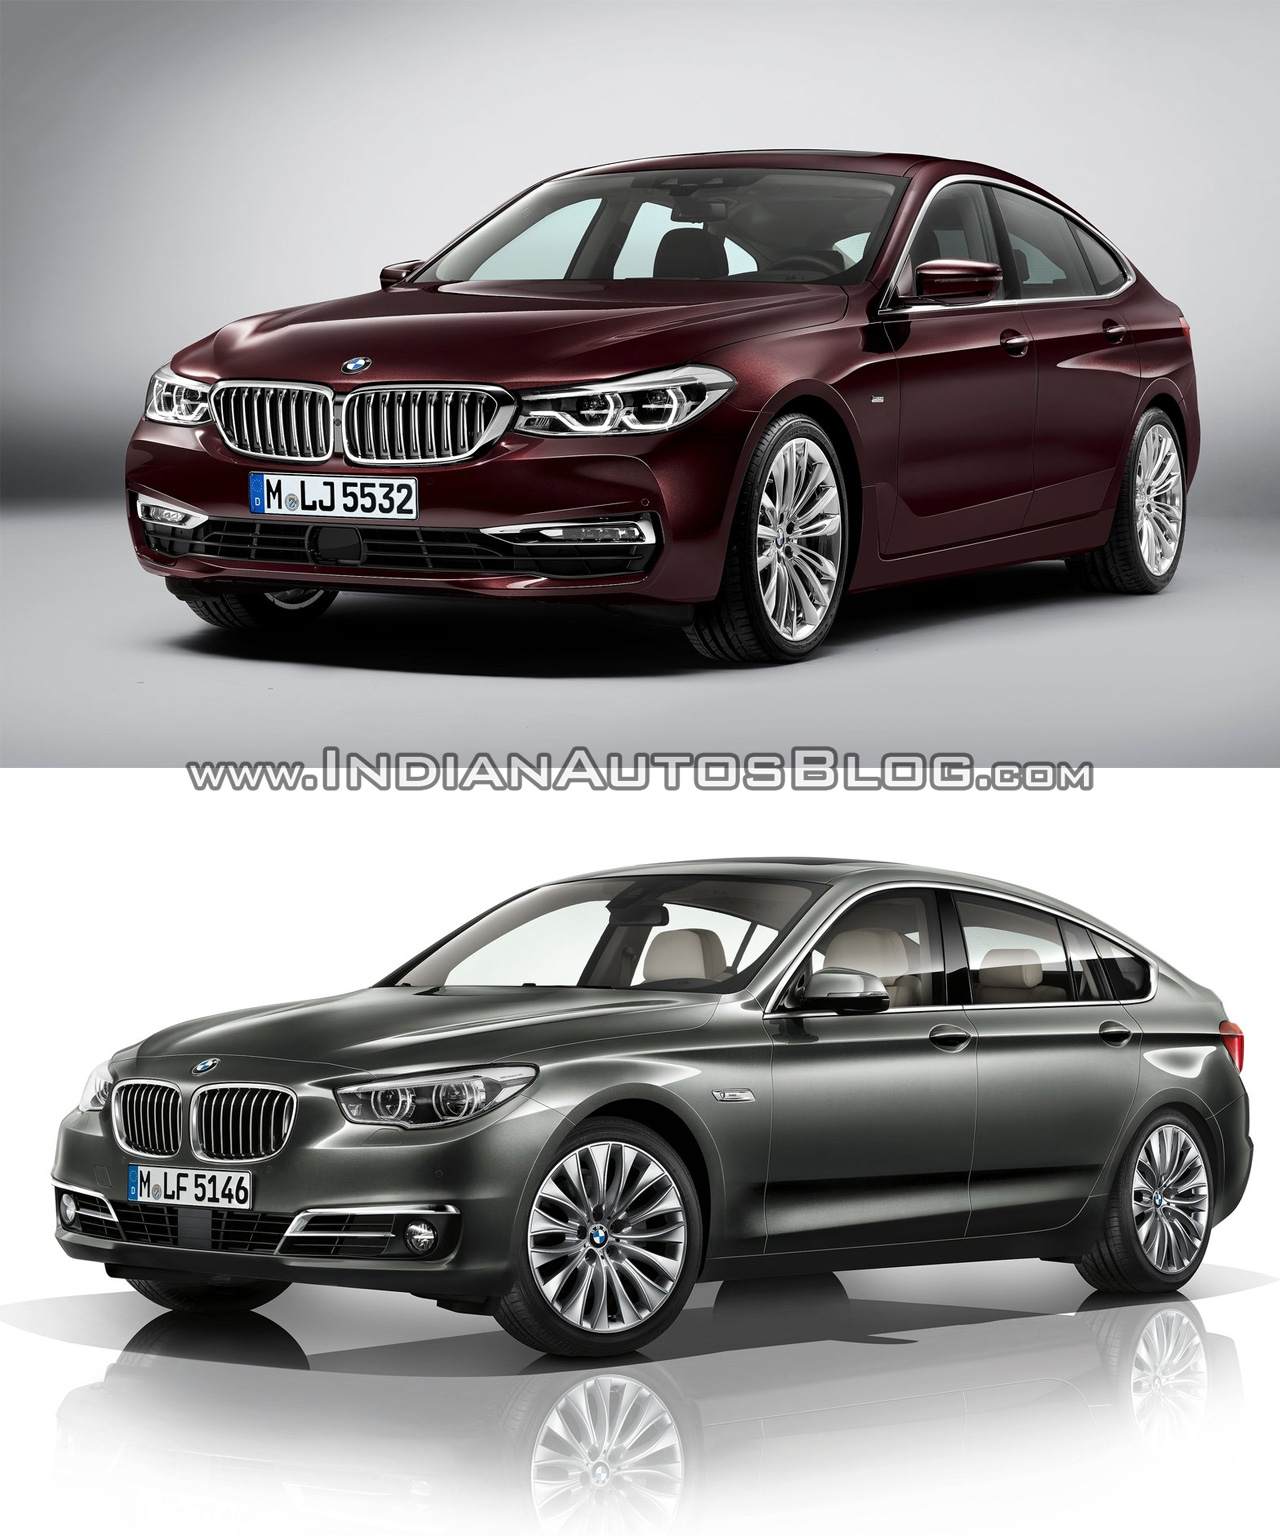 bmw 6 series gt vs bmw 5 series gt old vs new. Black Bedroom Furniture Sets. Home Design Ideas